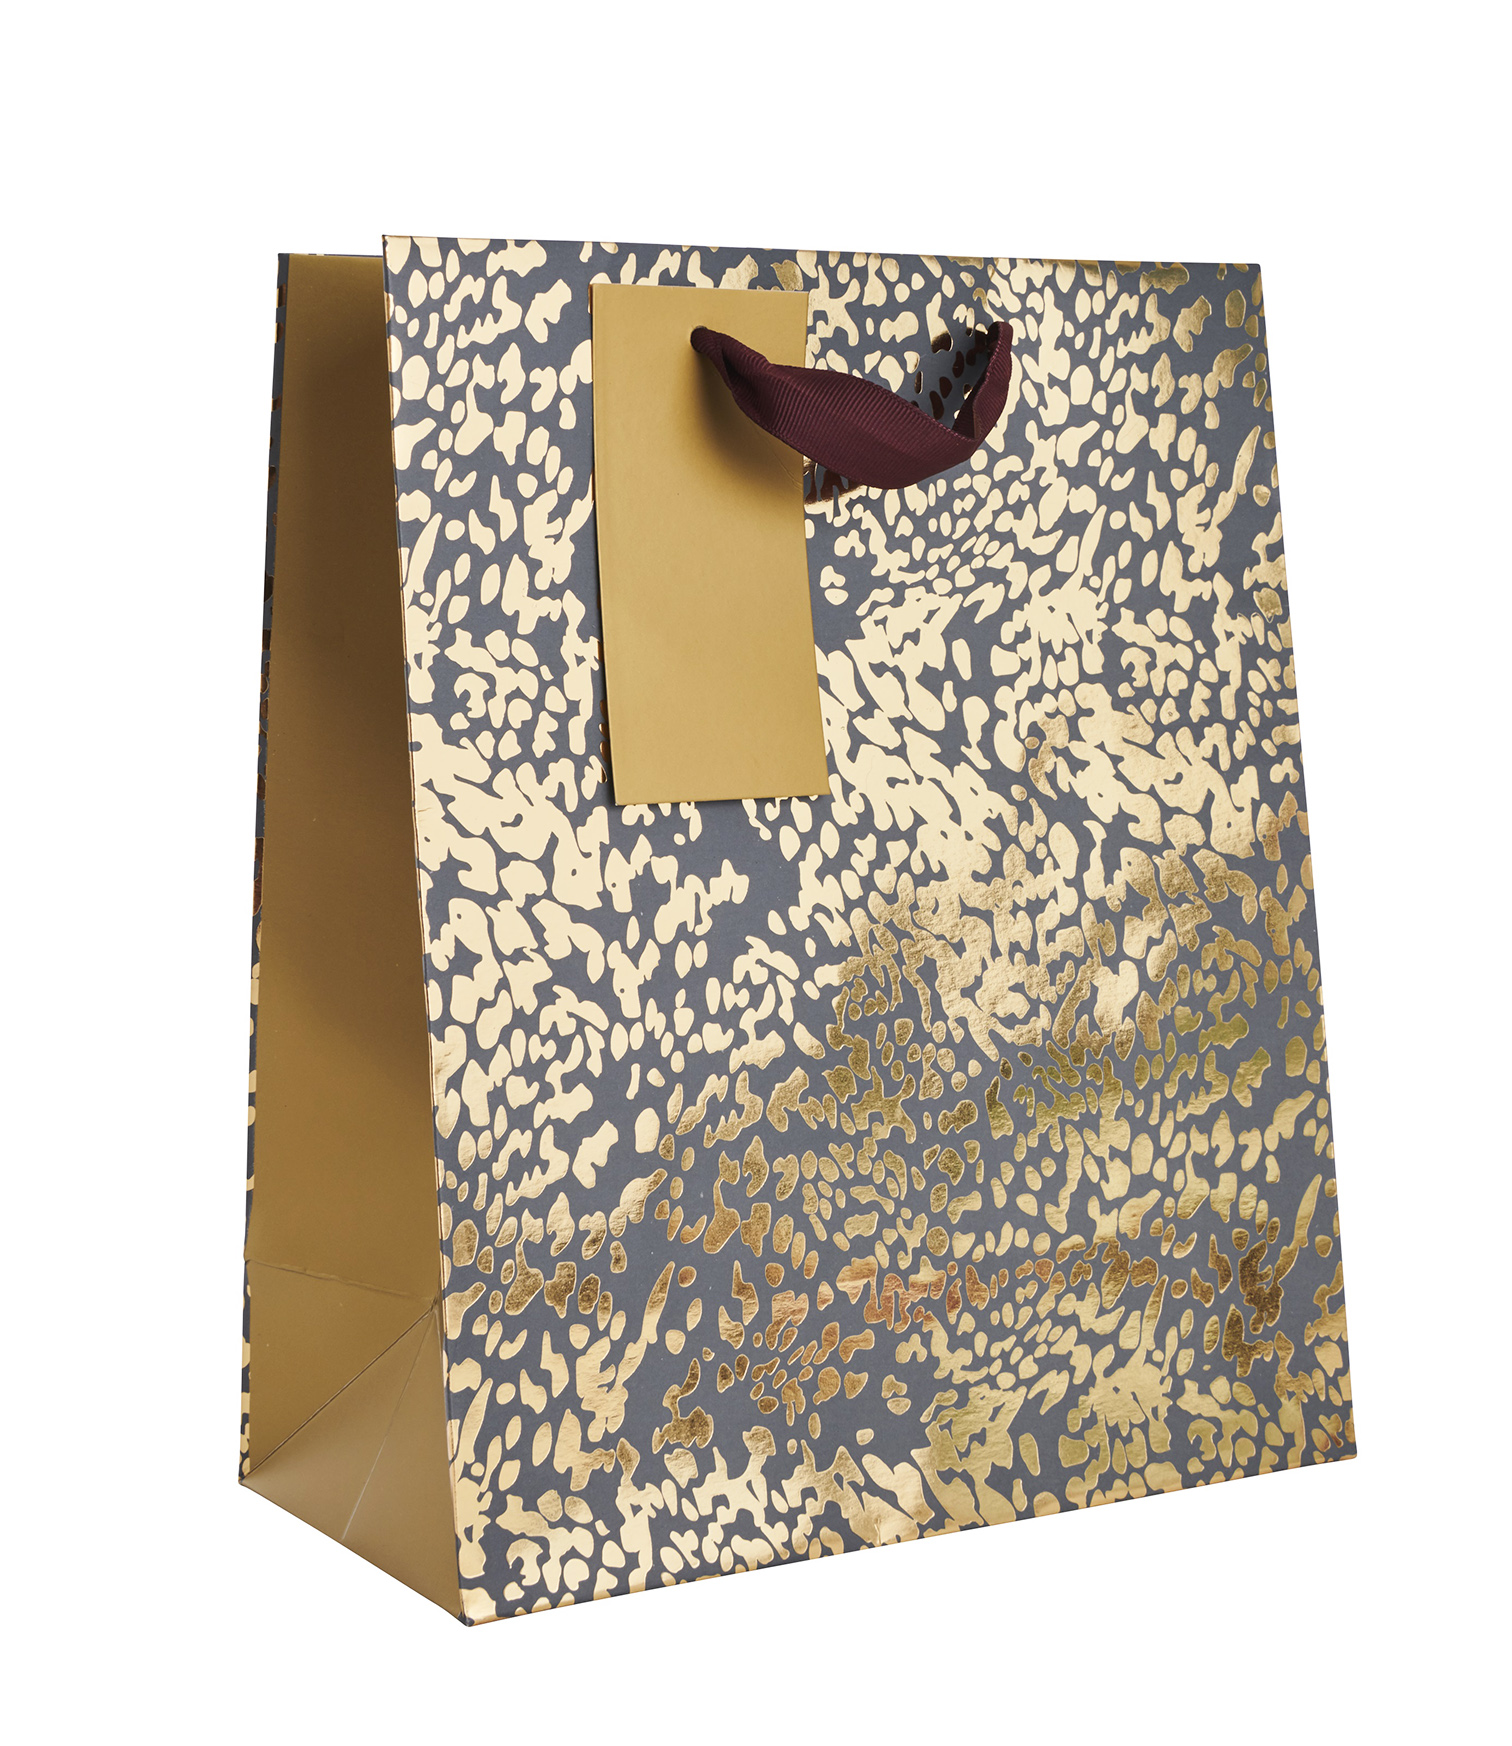 Fully recyclable gift bags